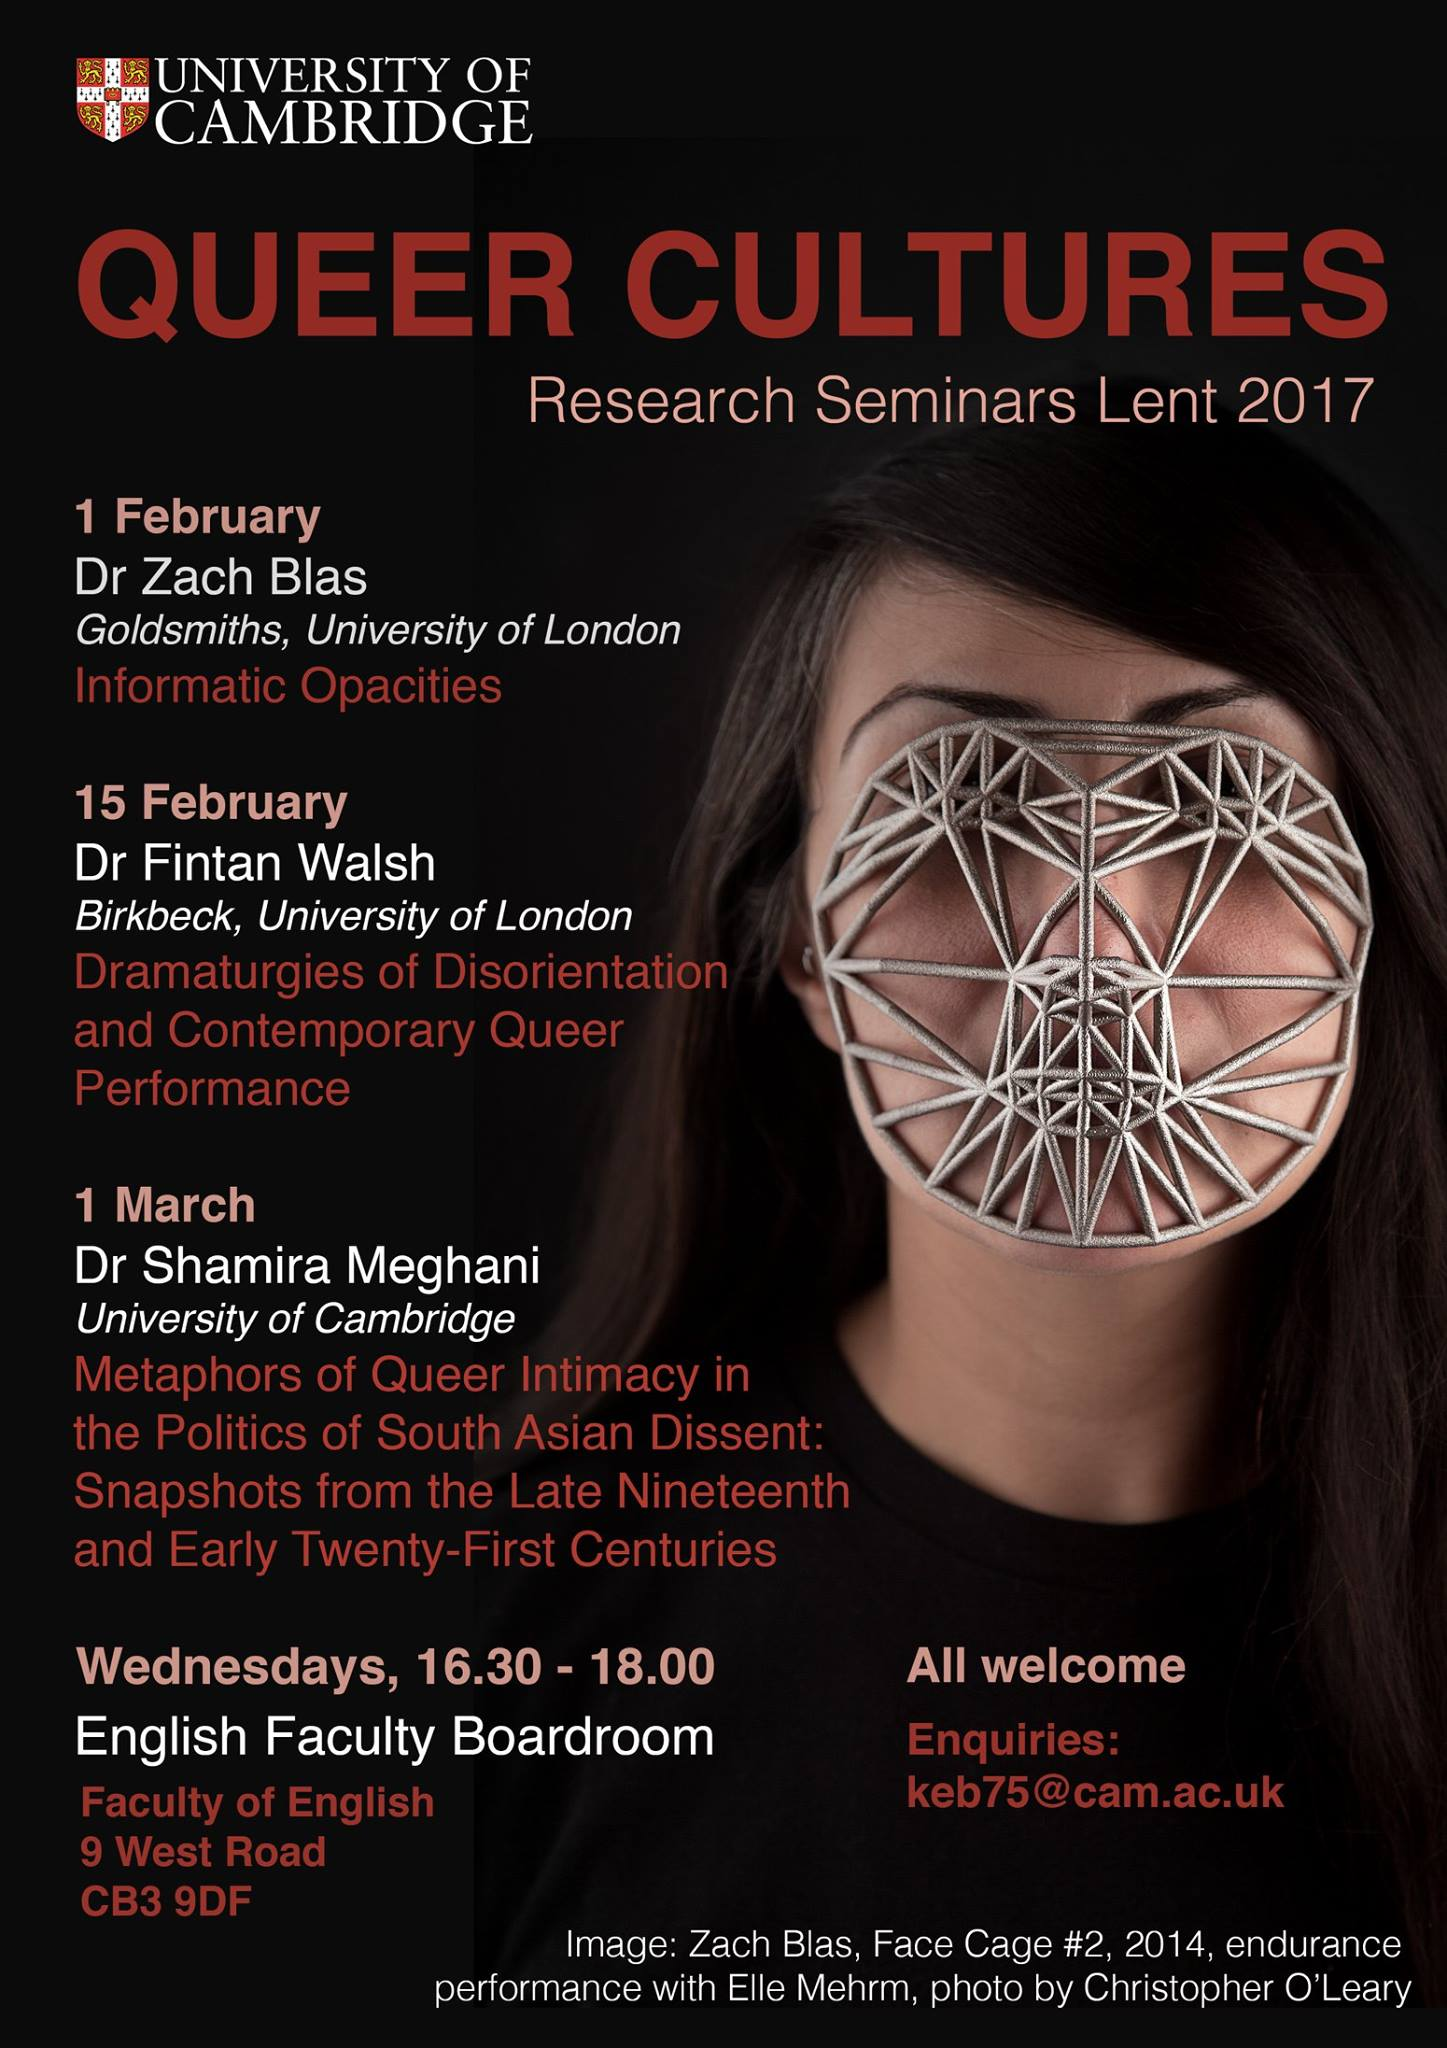 Queer Cultures Research Seminars